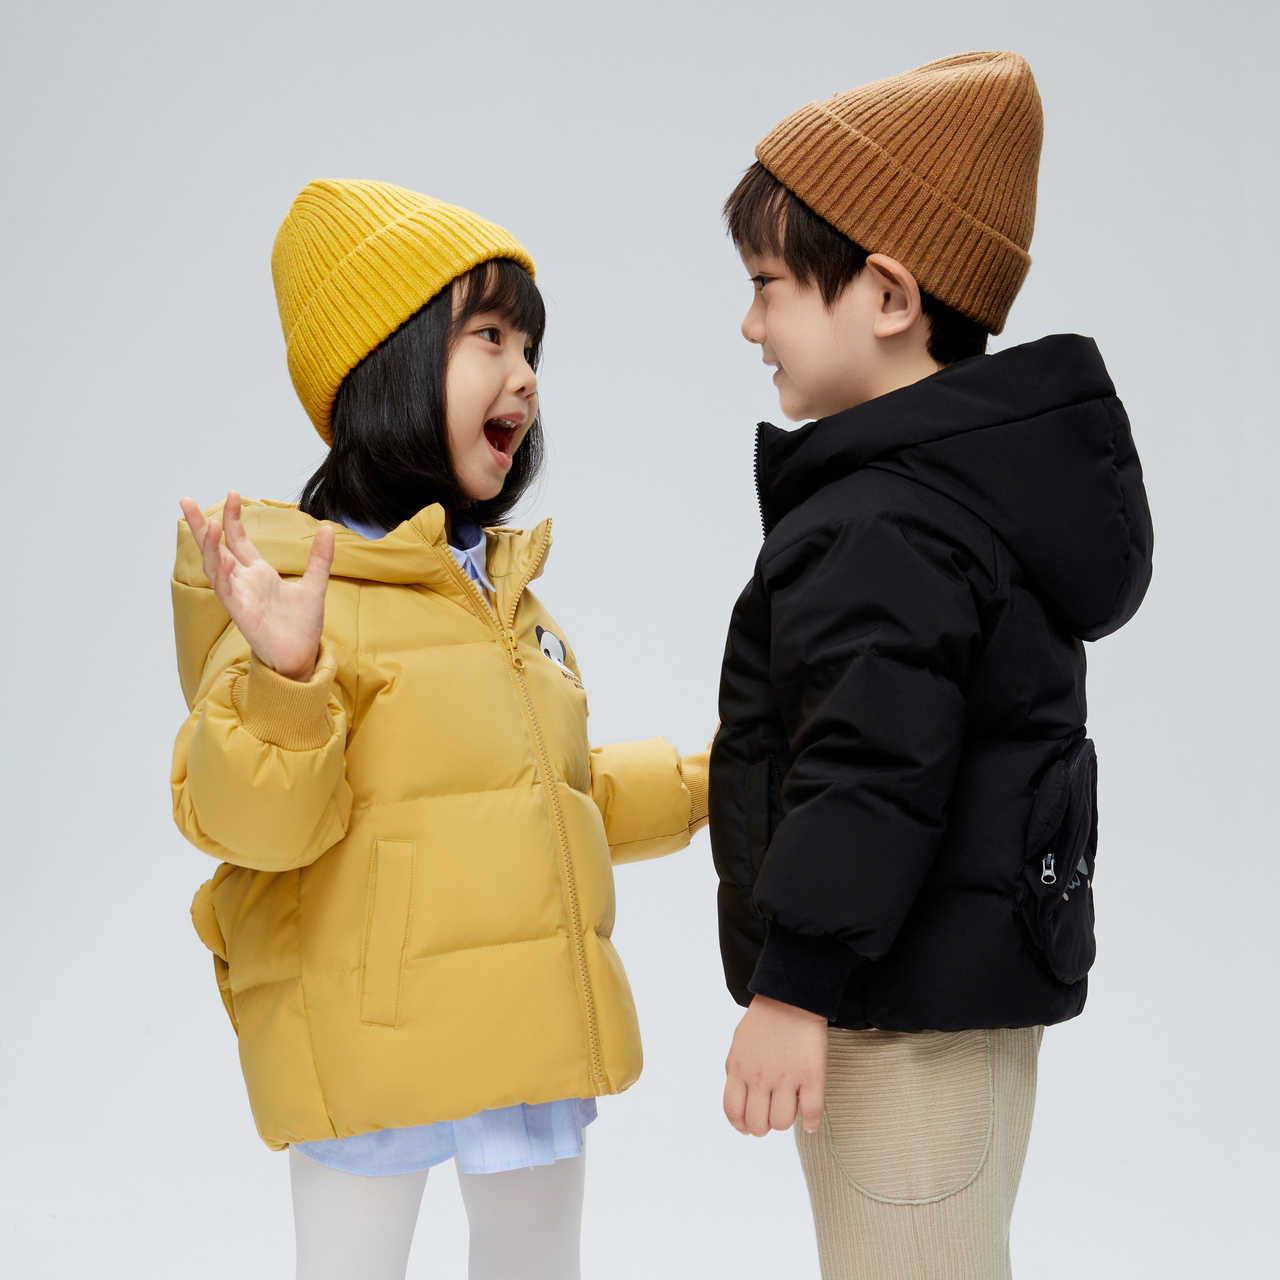 Bosideng children's clothing new boys and girls warm cute little panda new warm down jacket T00145350